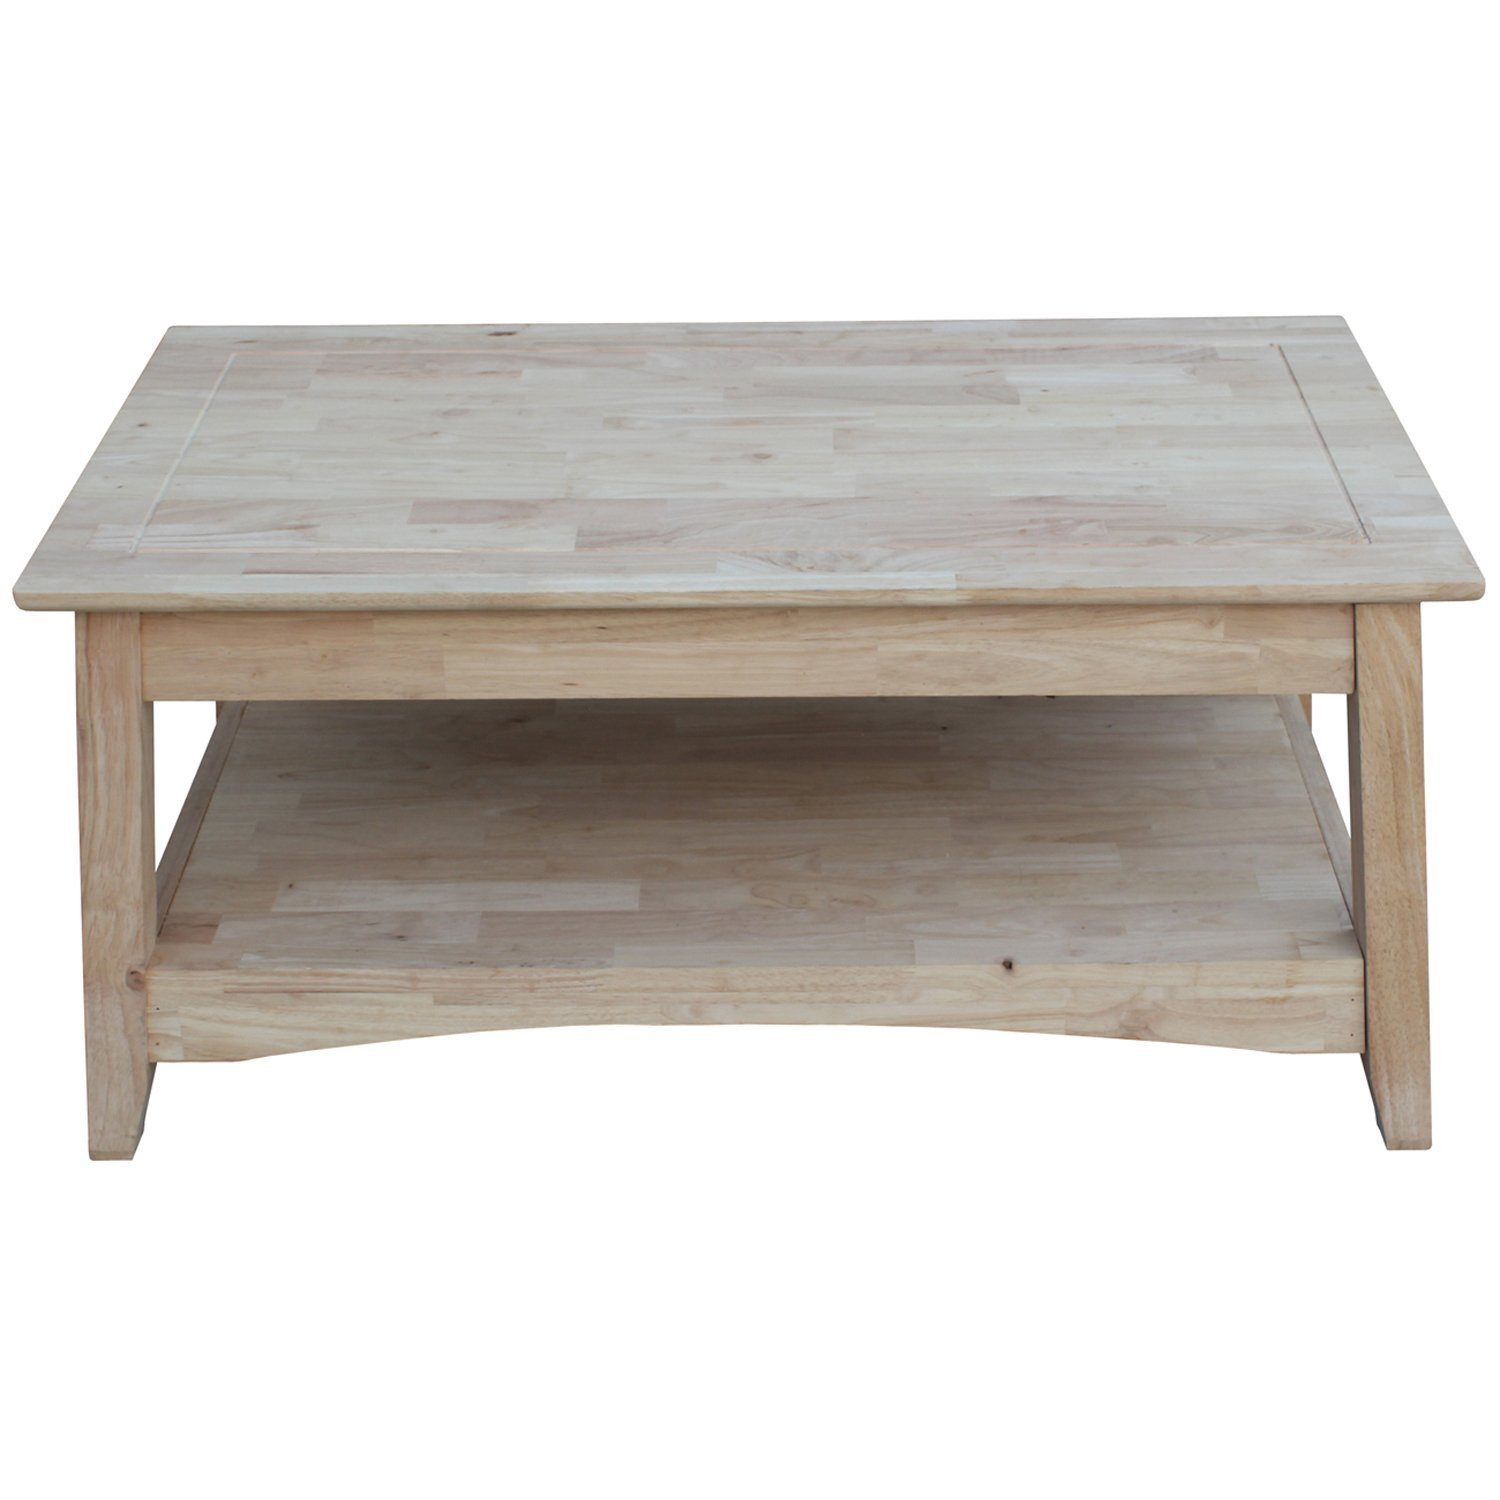 International concepts ot 4tcl bombay tall coffee table - How tall is a coffee table ...